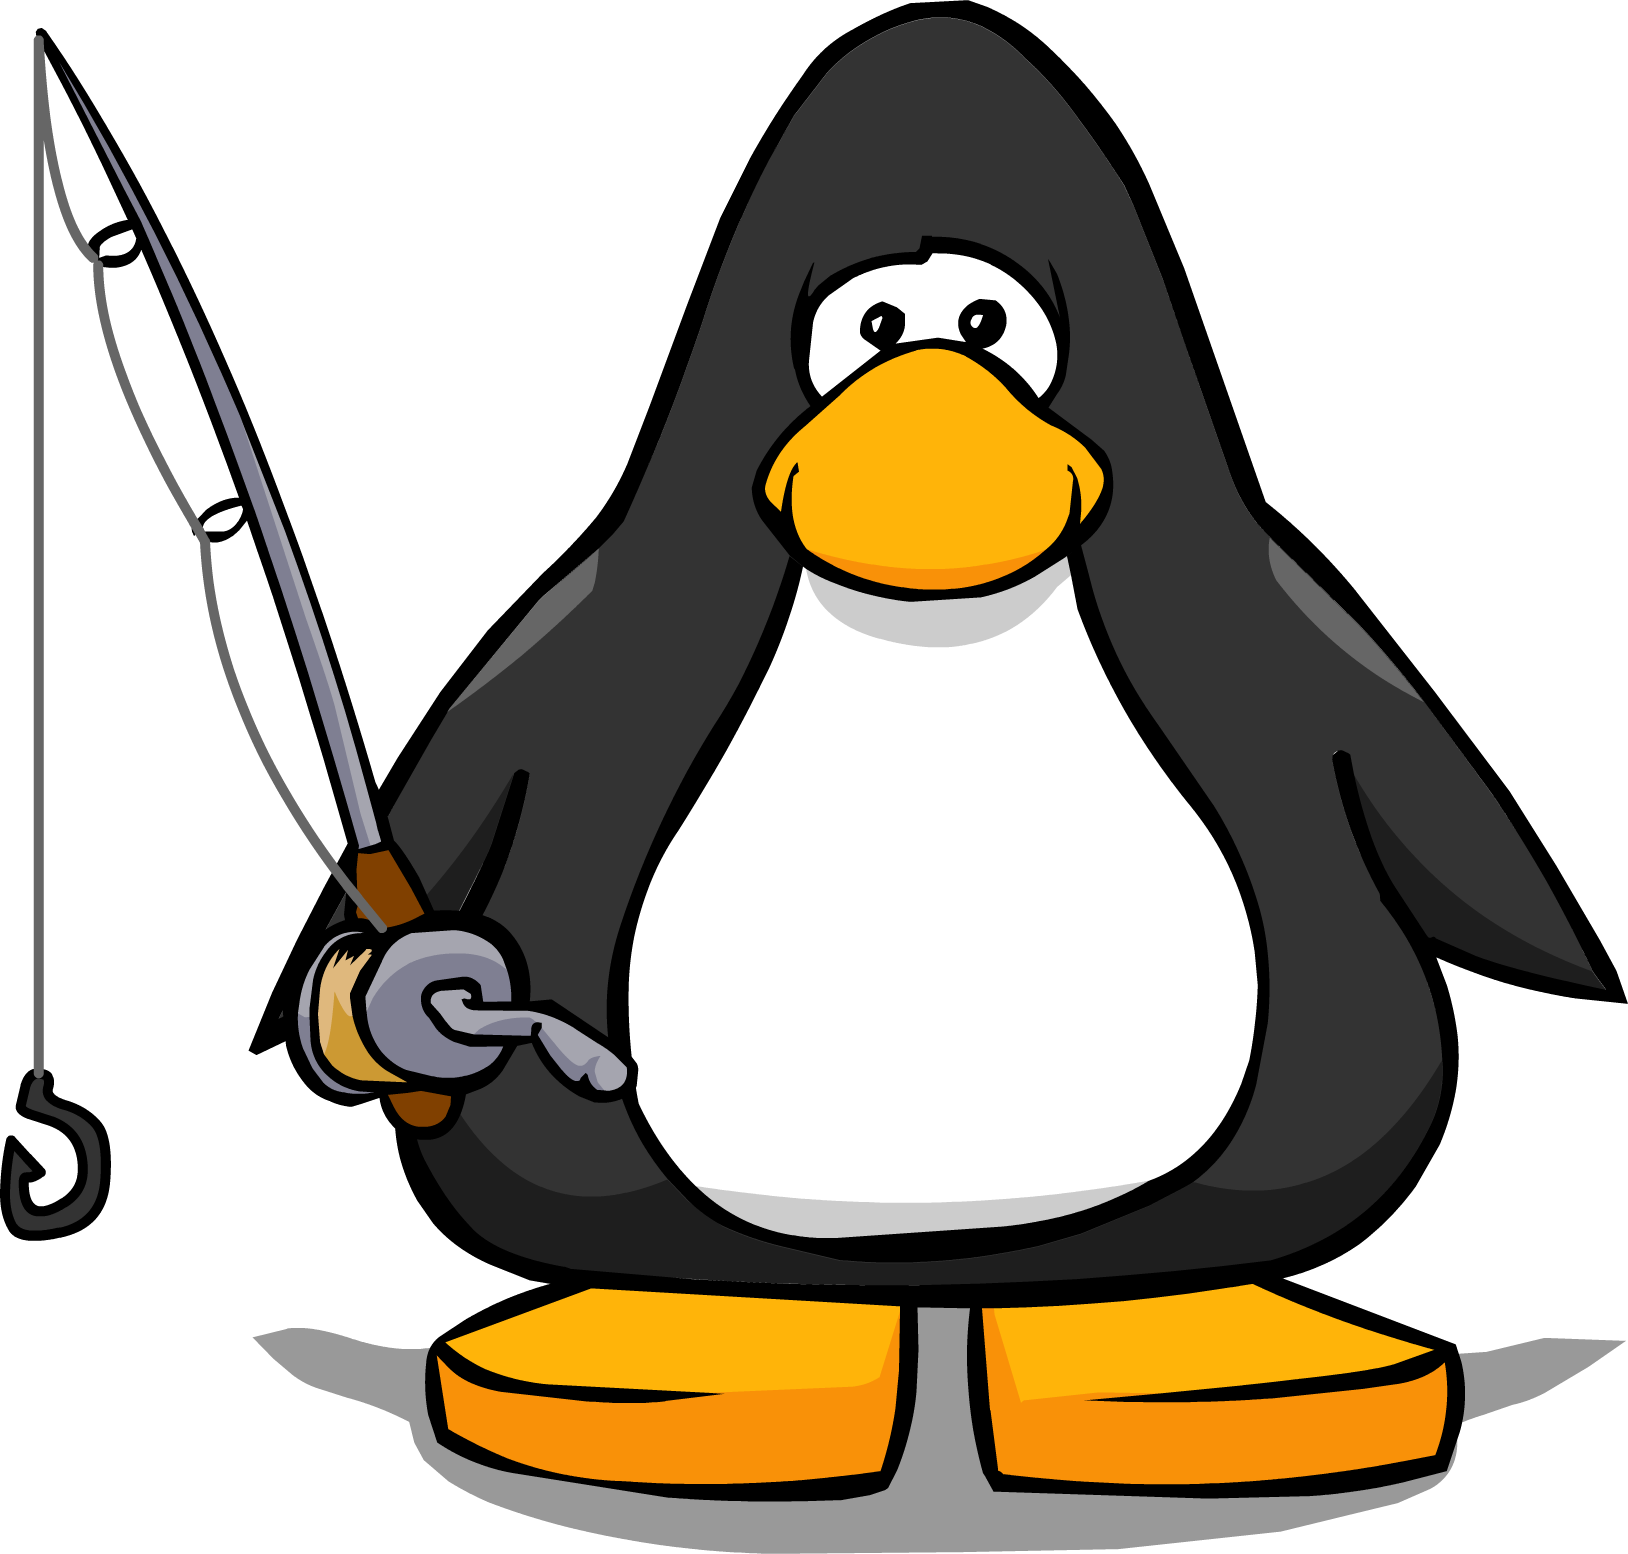 Clipart penquin fishing. Image rod from a